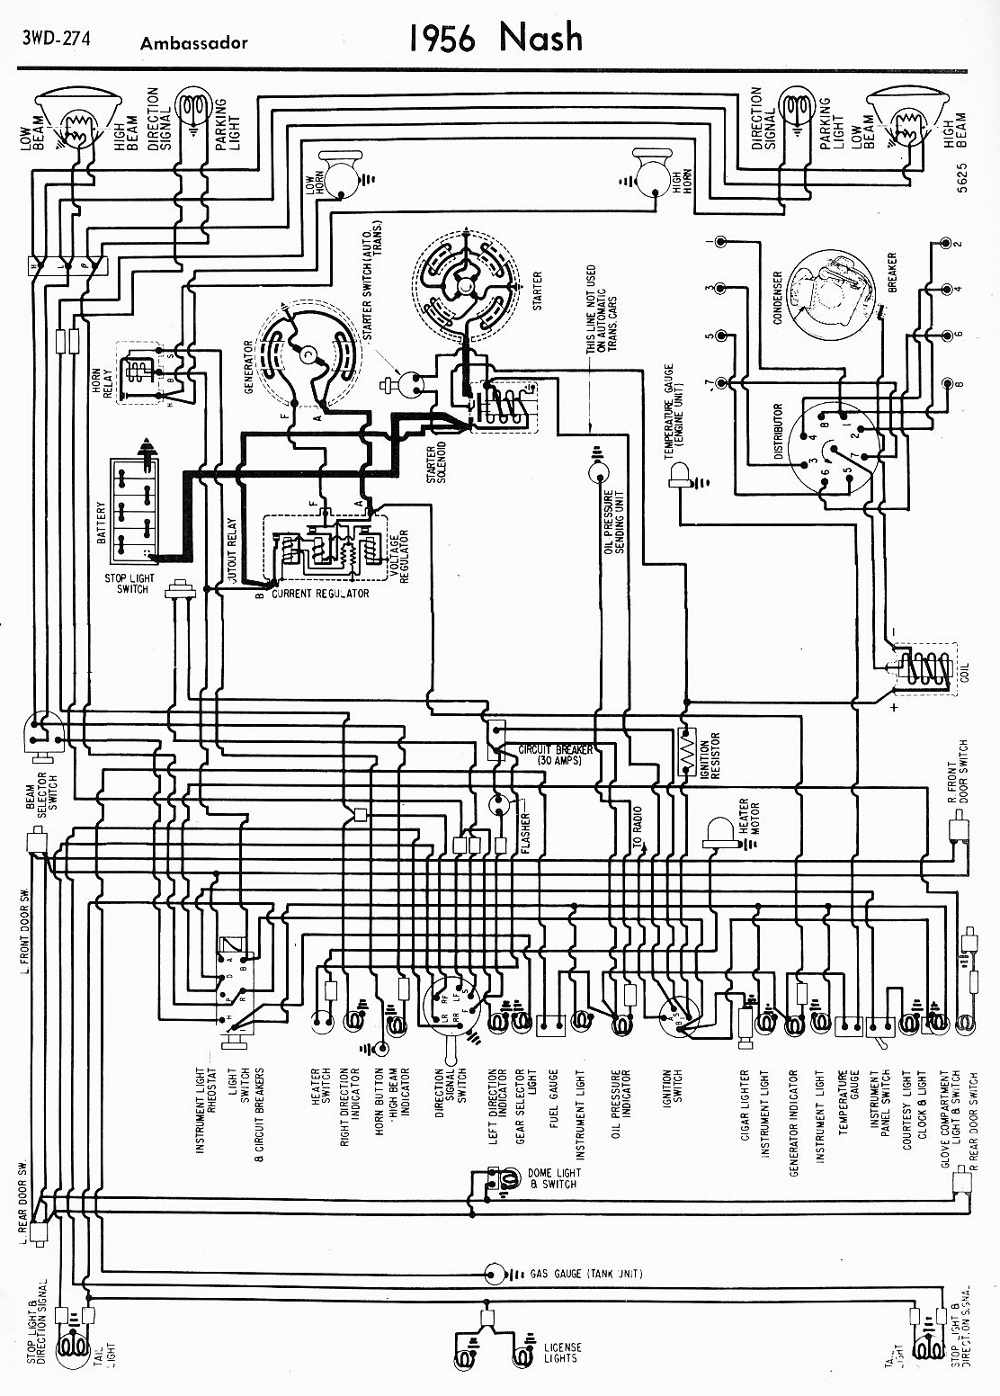 68 Toyota Land Cruiser Wiring Diagram Electrical Diagrams For 1968 Plymouth Roadrunner Trusted 64